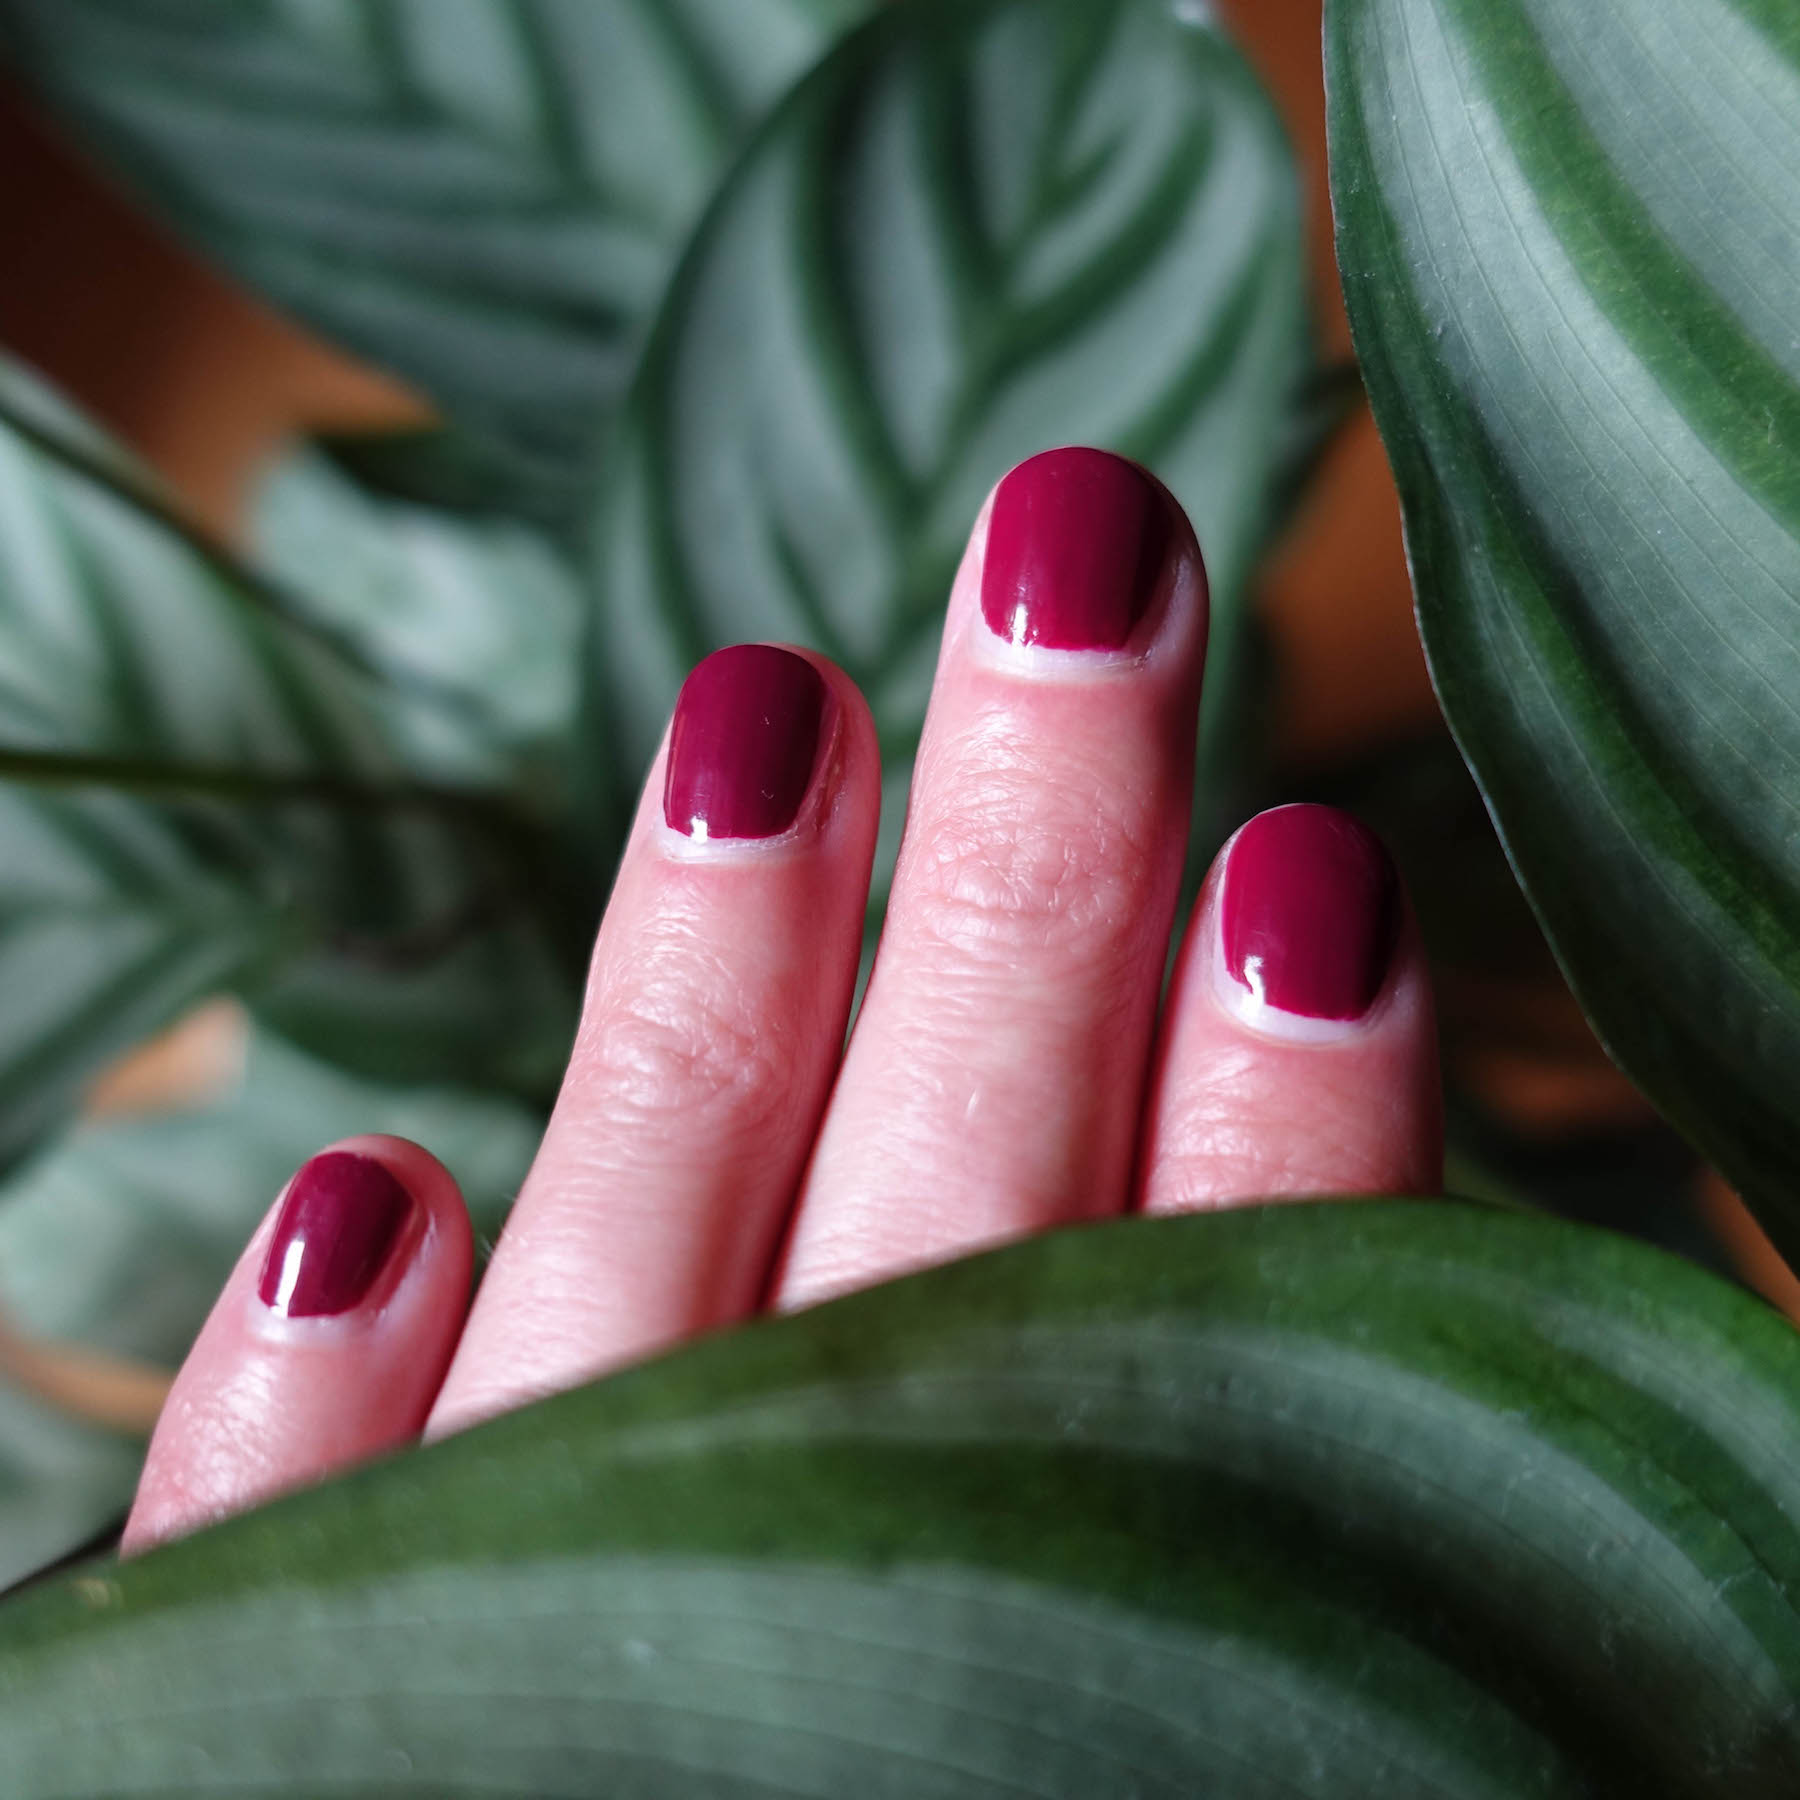 Nagellack in Burgund suelovesnyc_susan_fengler_essie_nailed_it_nagellack_trend_farbe_nagellack_in_burgund_1 Essie nailed it